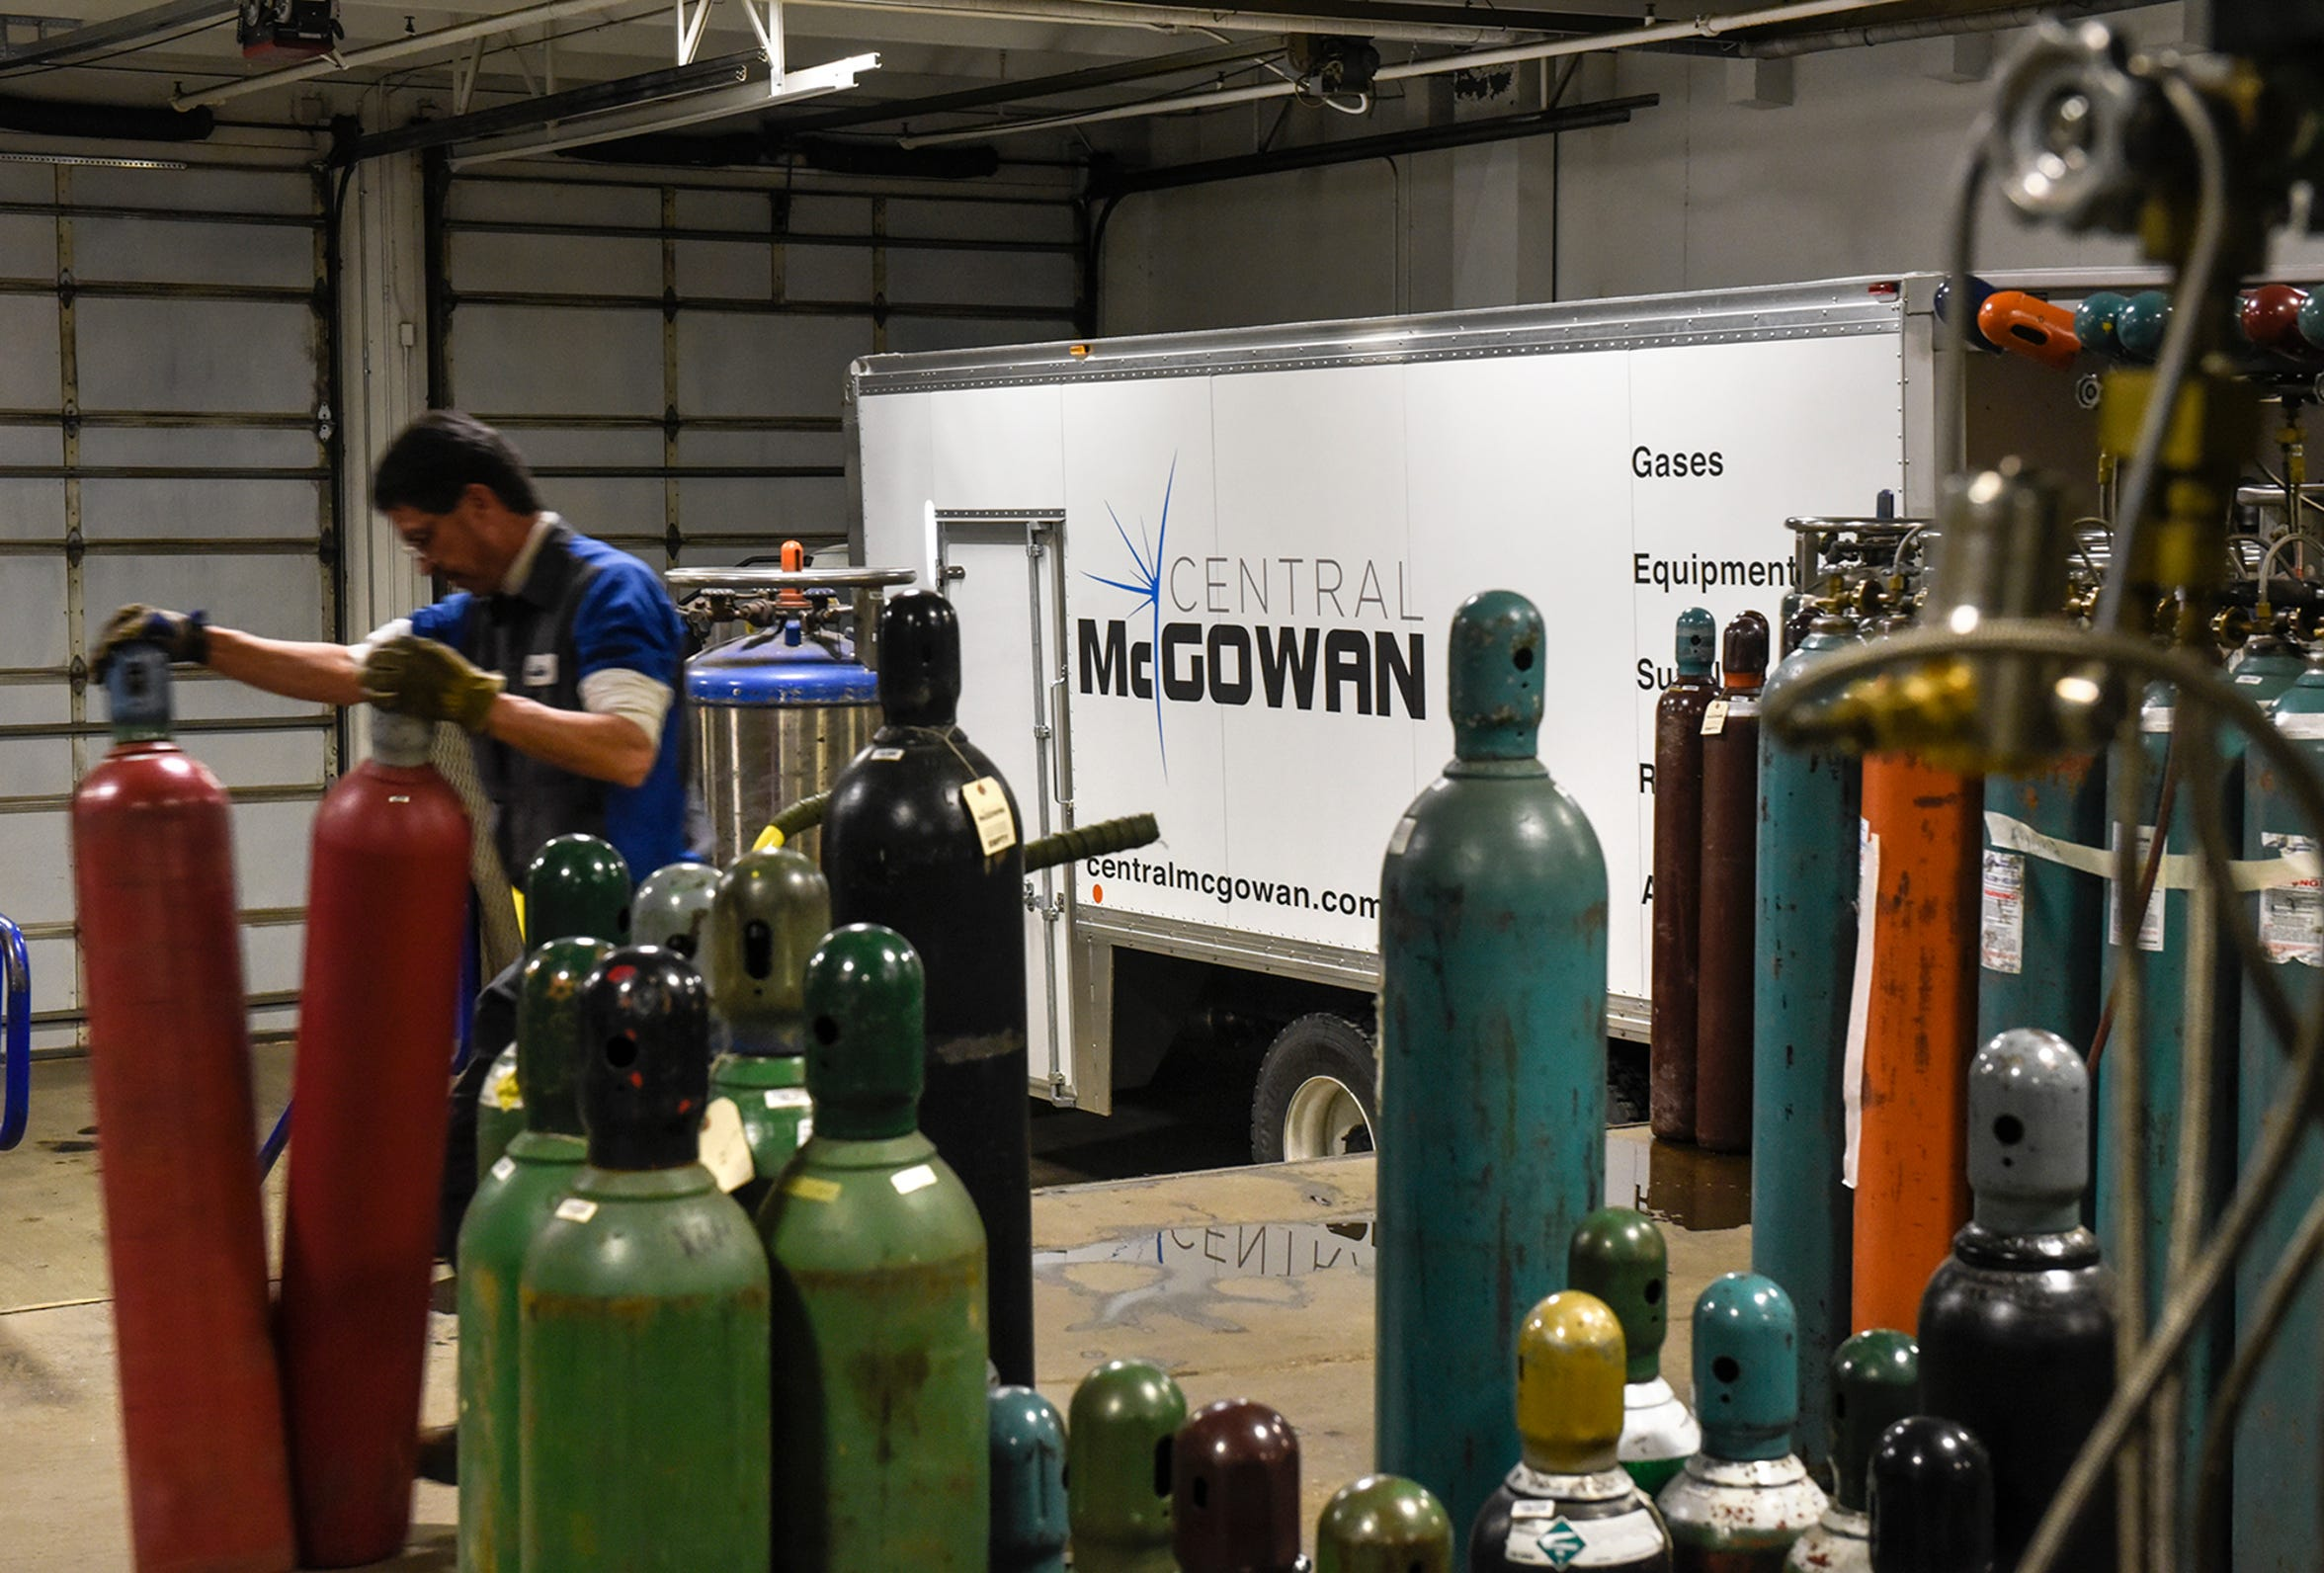 Cylinders are loaded for delivery at Central McGowan Thursday, Dec. 6, in St. Cloud.